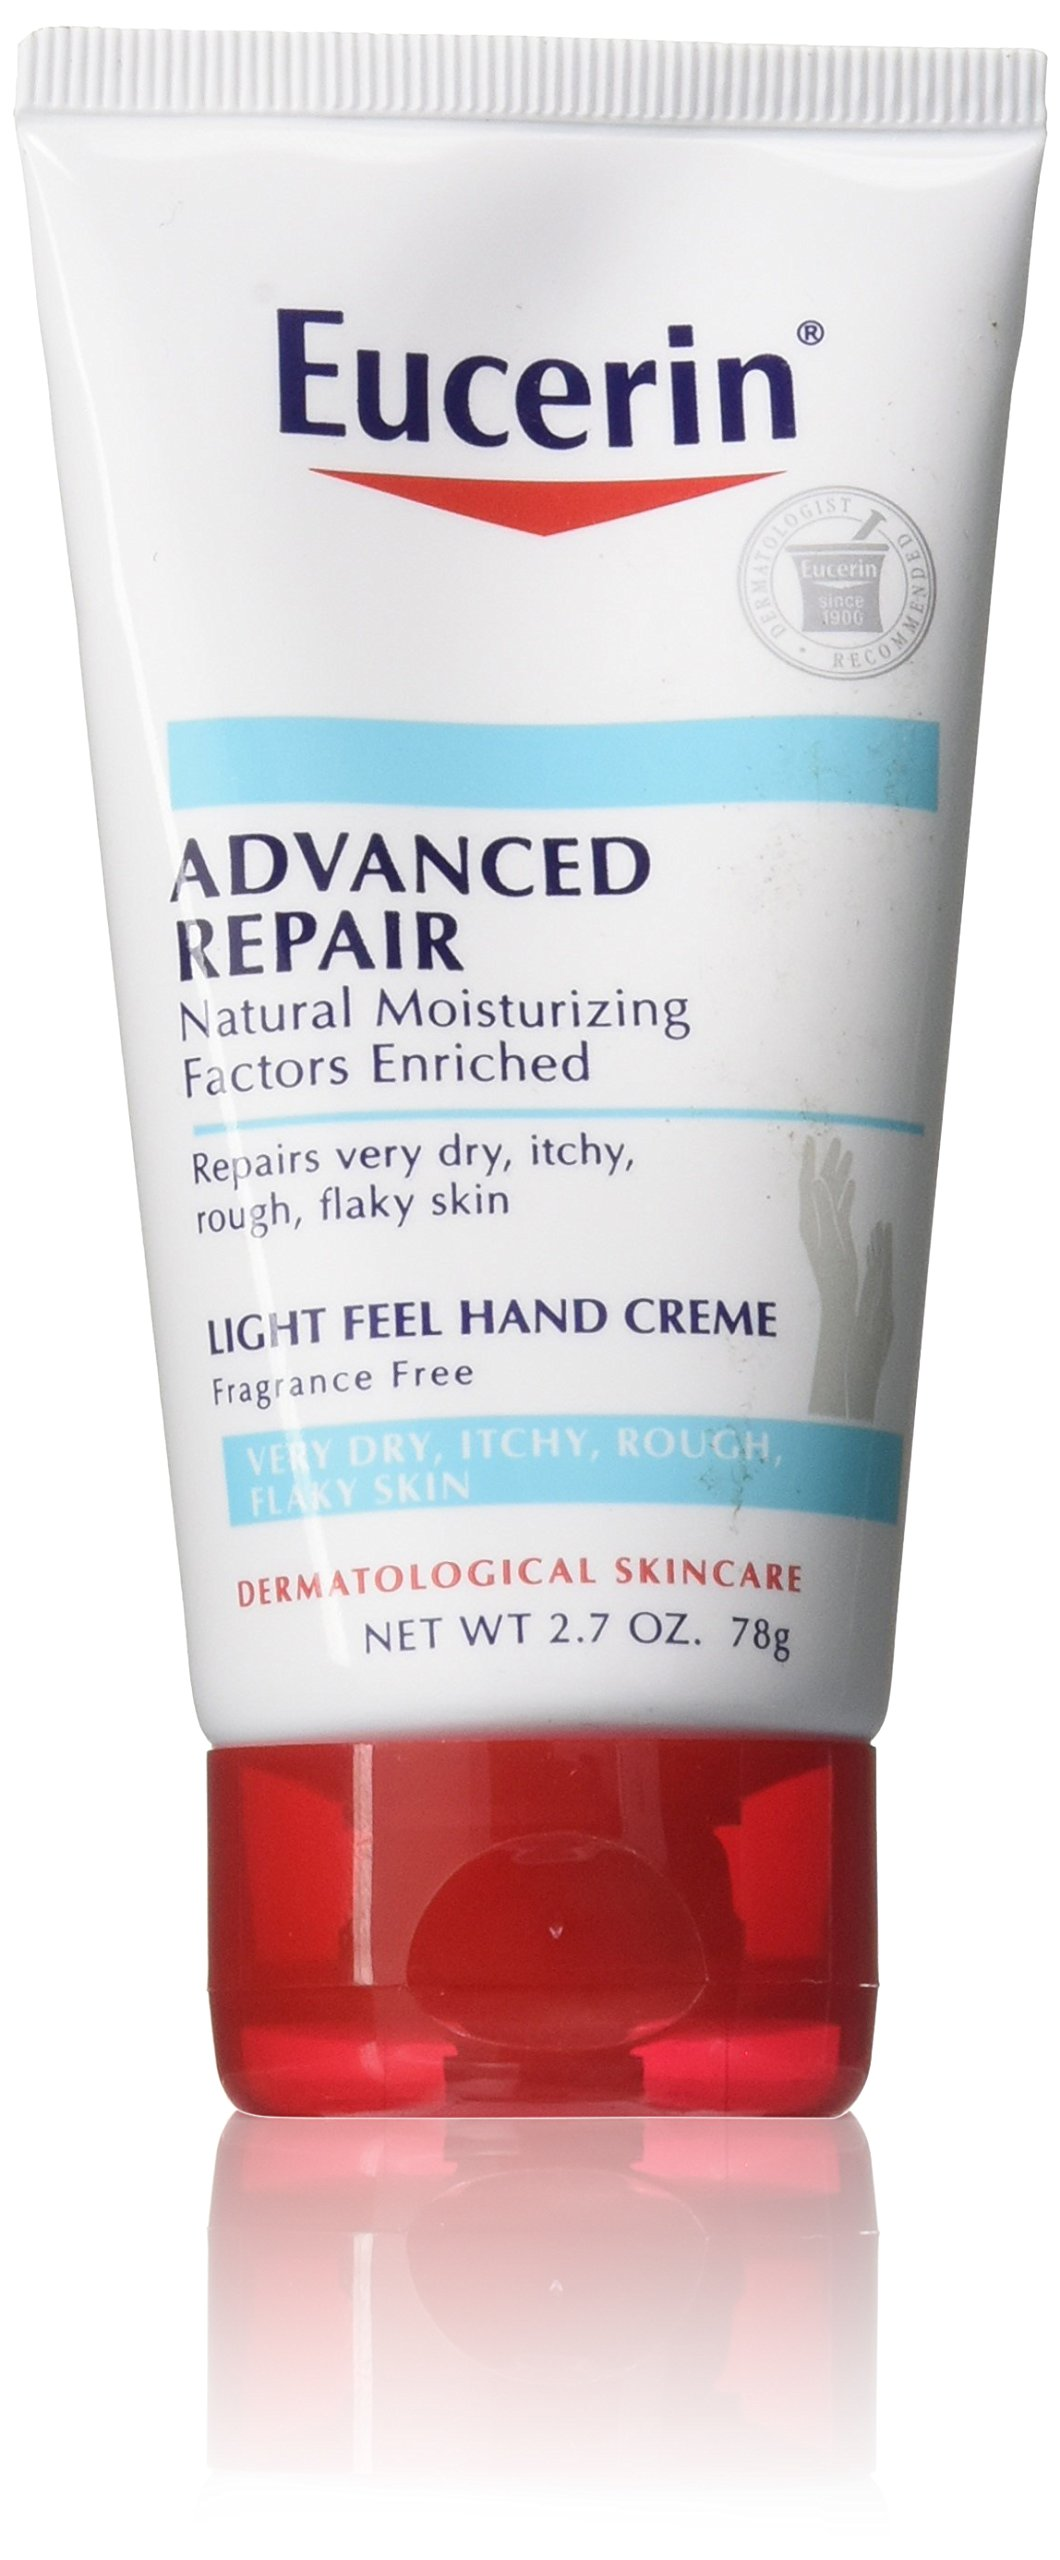 Eucerin Advanced Repair Hand Creme, 2.7 Ounce